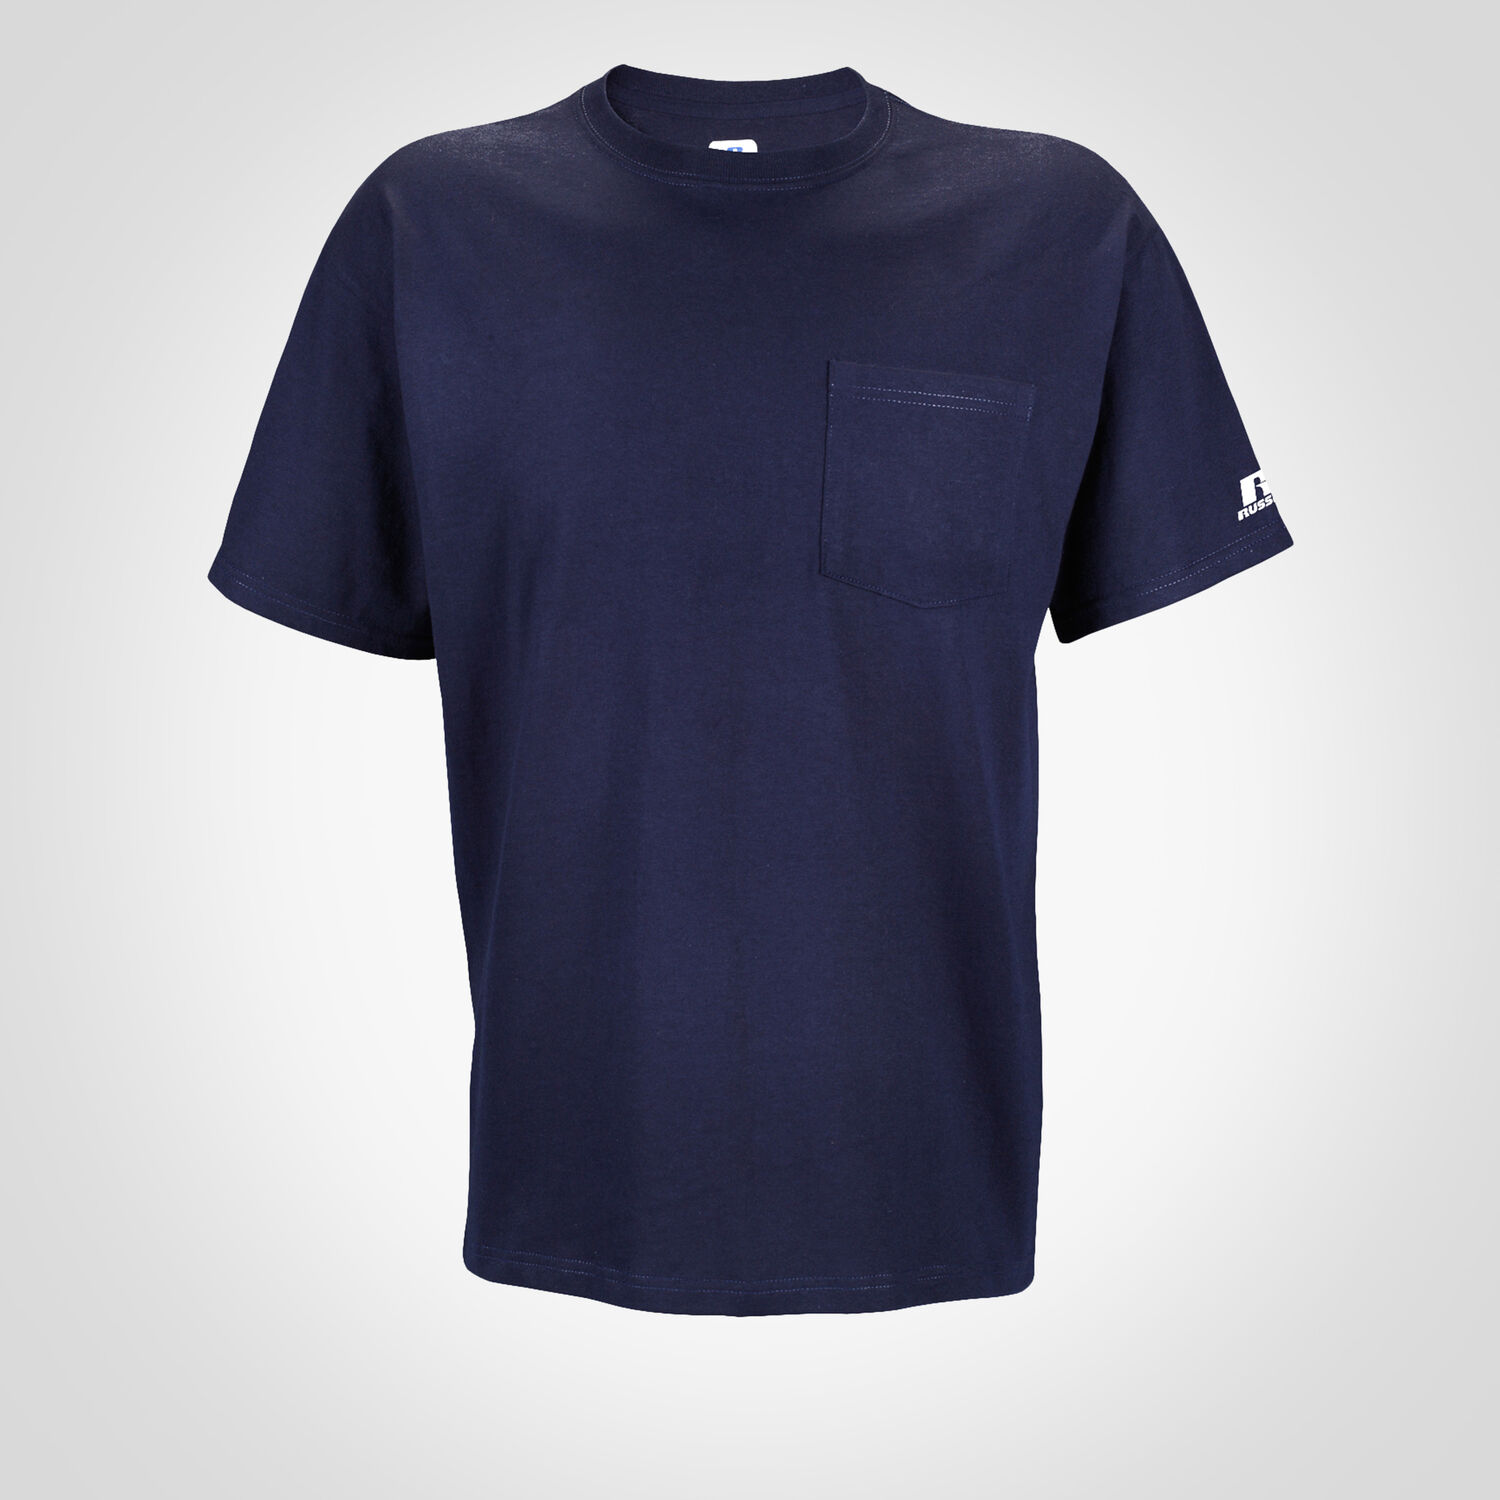 47923c4120e Men's Basic Cotton Pocket Tee - Russell US | Russell Athletic